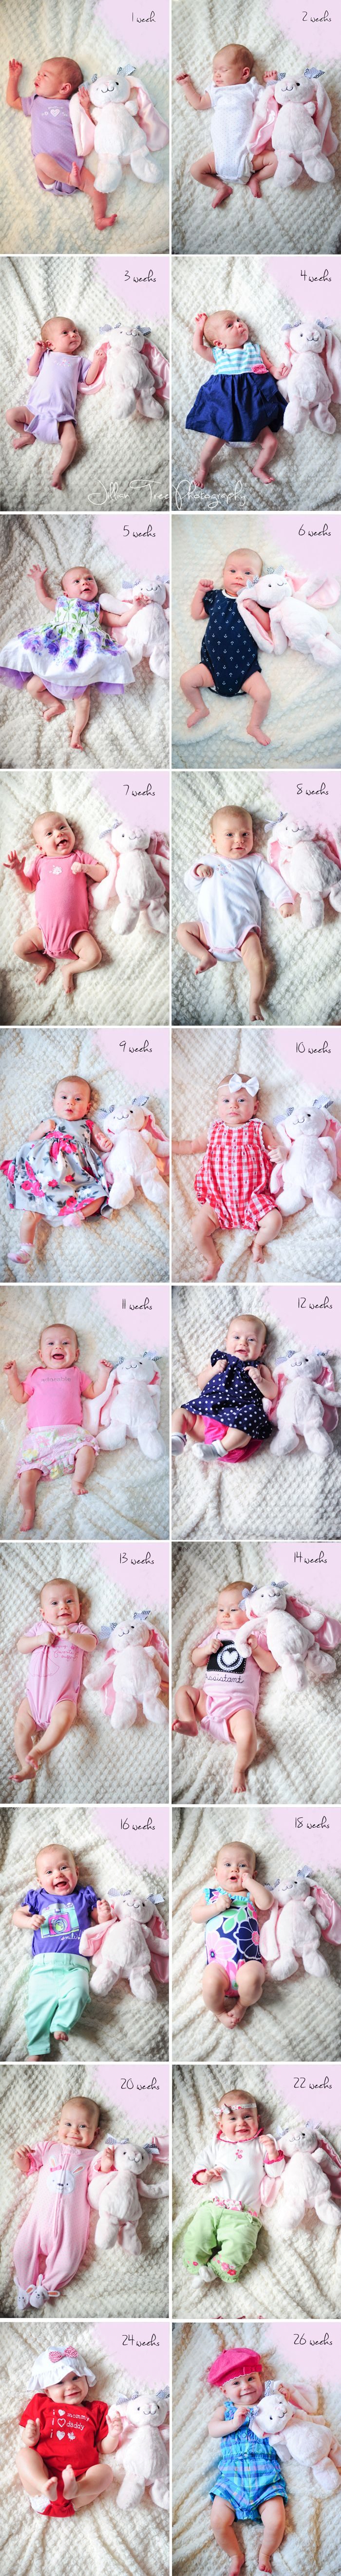 Baby's First Half Year Growth - pictures with favorite stuffed animal to see growth